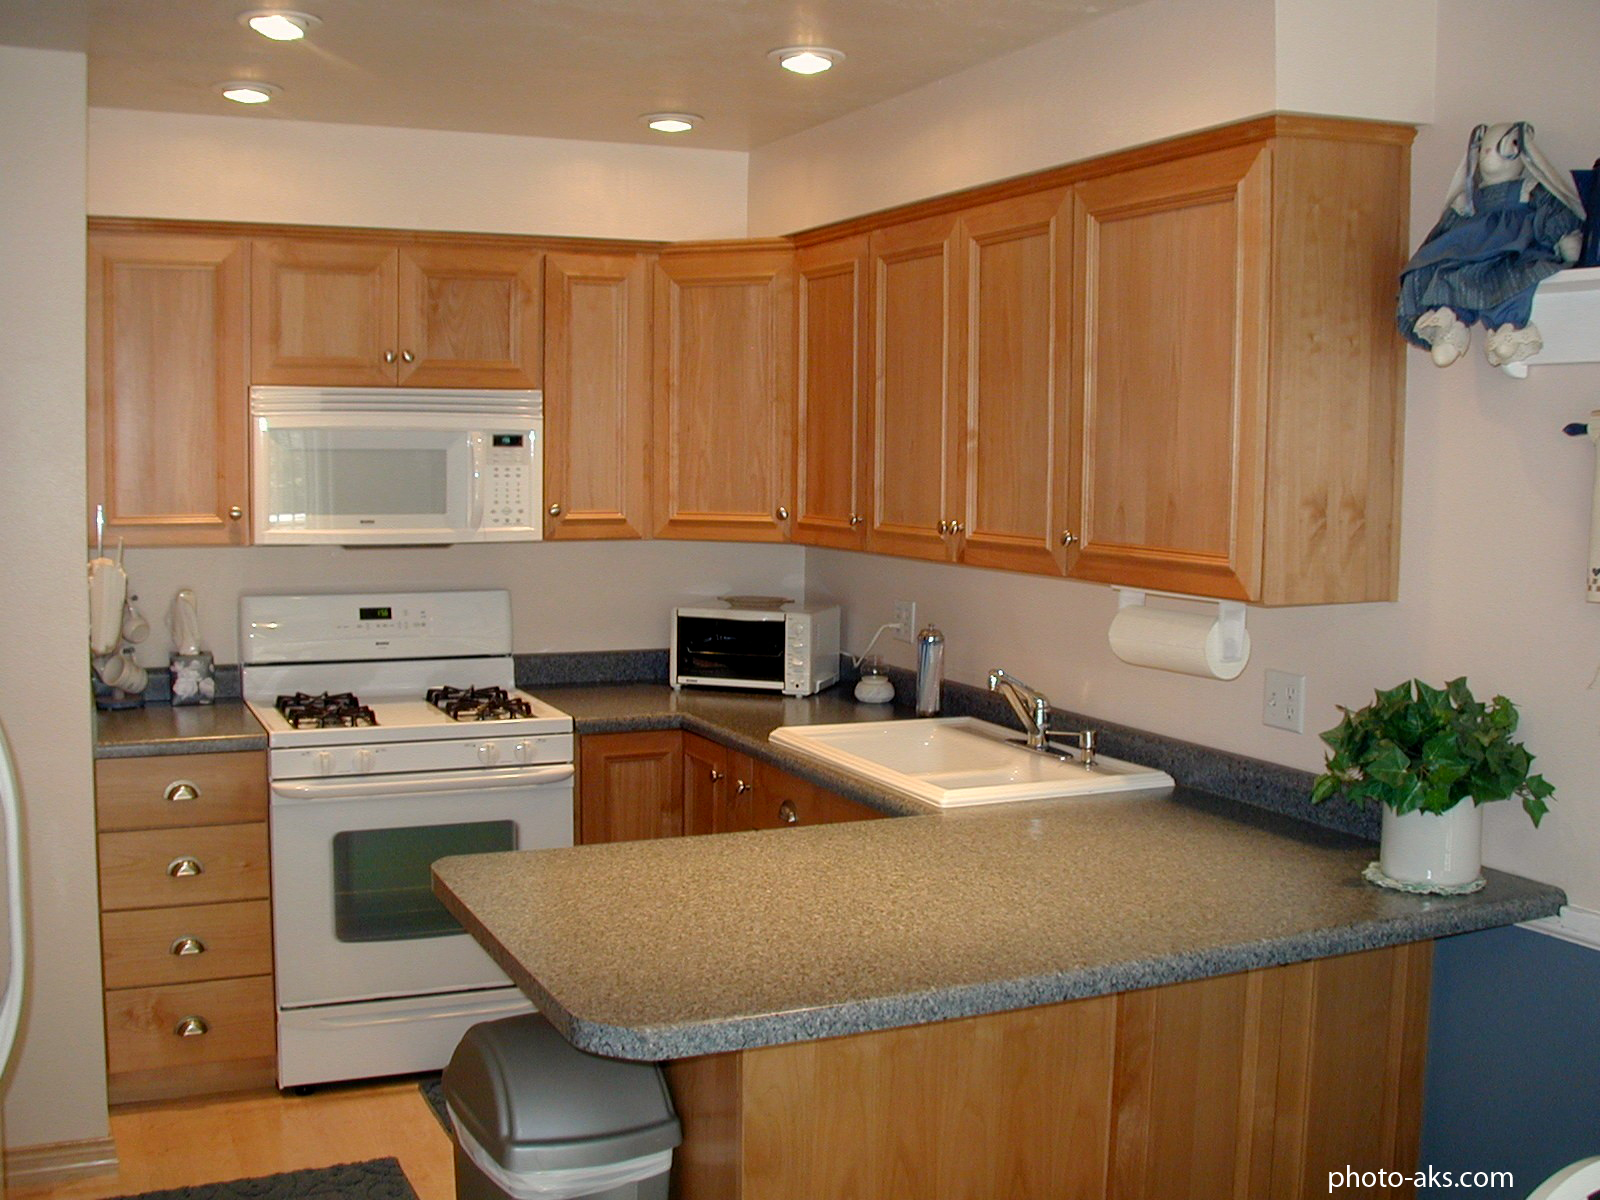 Kitchen appliance colors for 2014 - Kitchen Appliance Colors For 2014 11